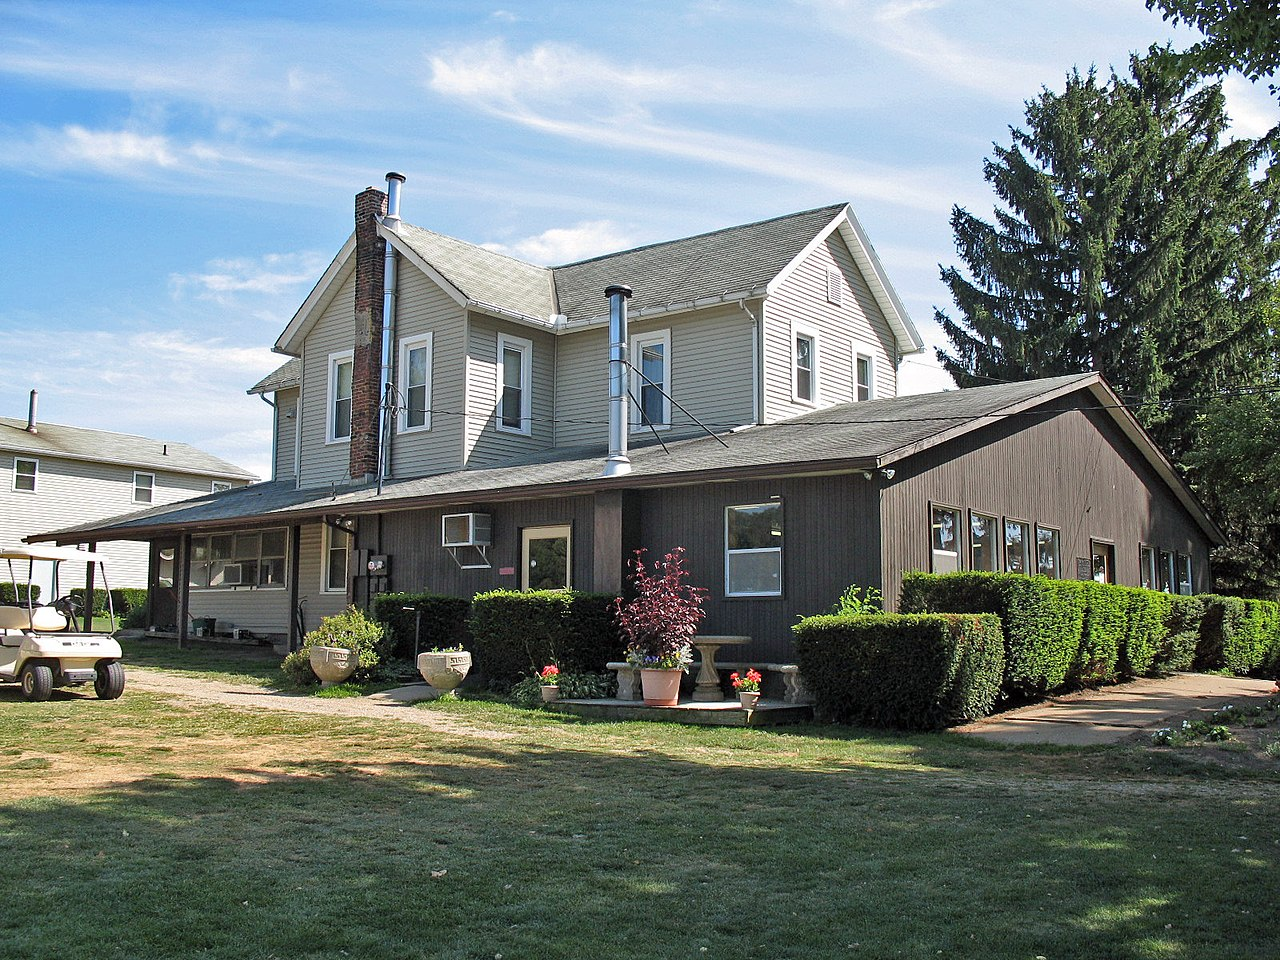 east canton Zillow has 117 homes for sale in east canton oh view listing photos, review sales history, and use our detailed real estate filters to find the perfect place.